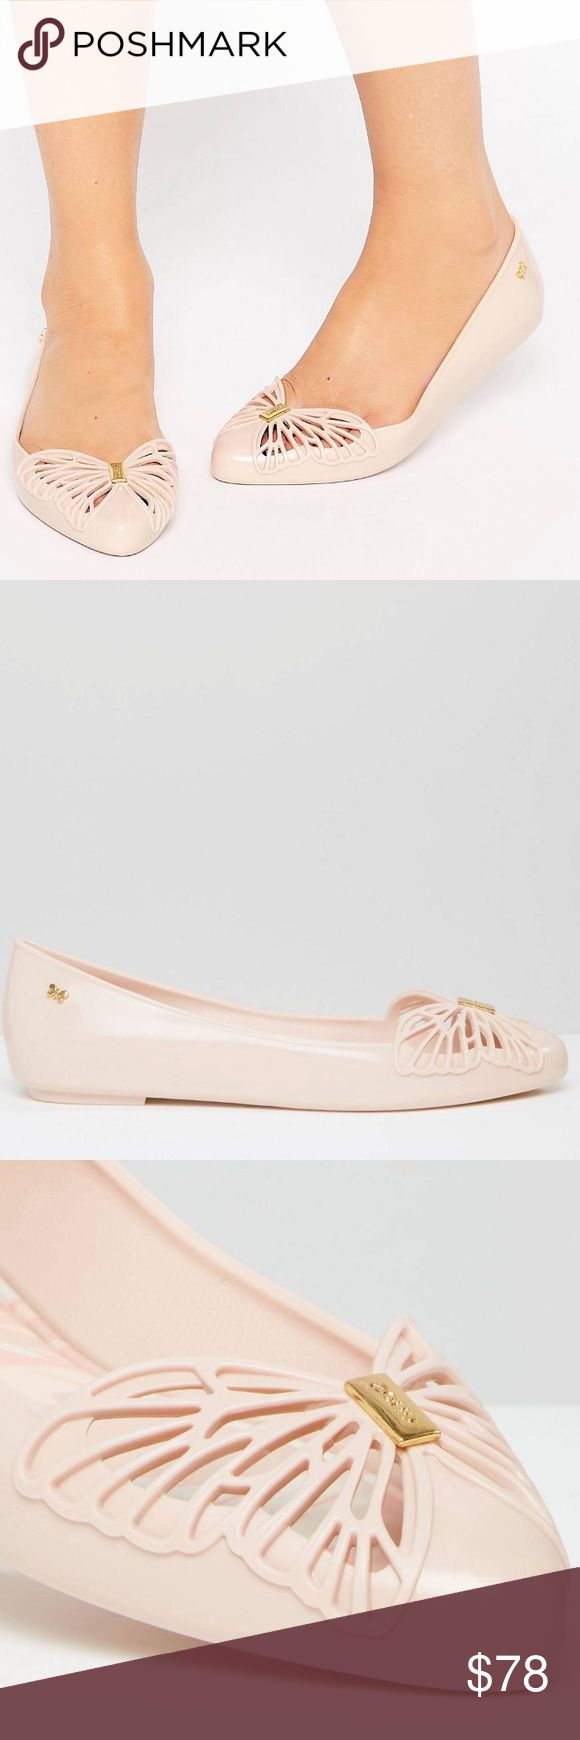 Zaxy Nude Free Point Flats Size 9 Cute cut-out butterfly detail! NWT  ASOS Shoes Flats & Loafers